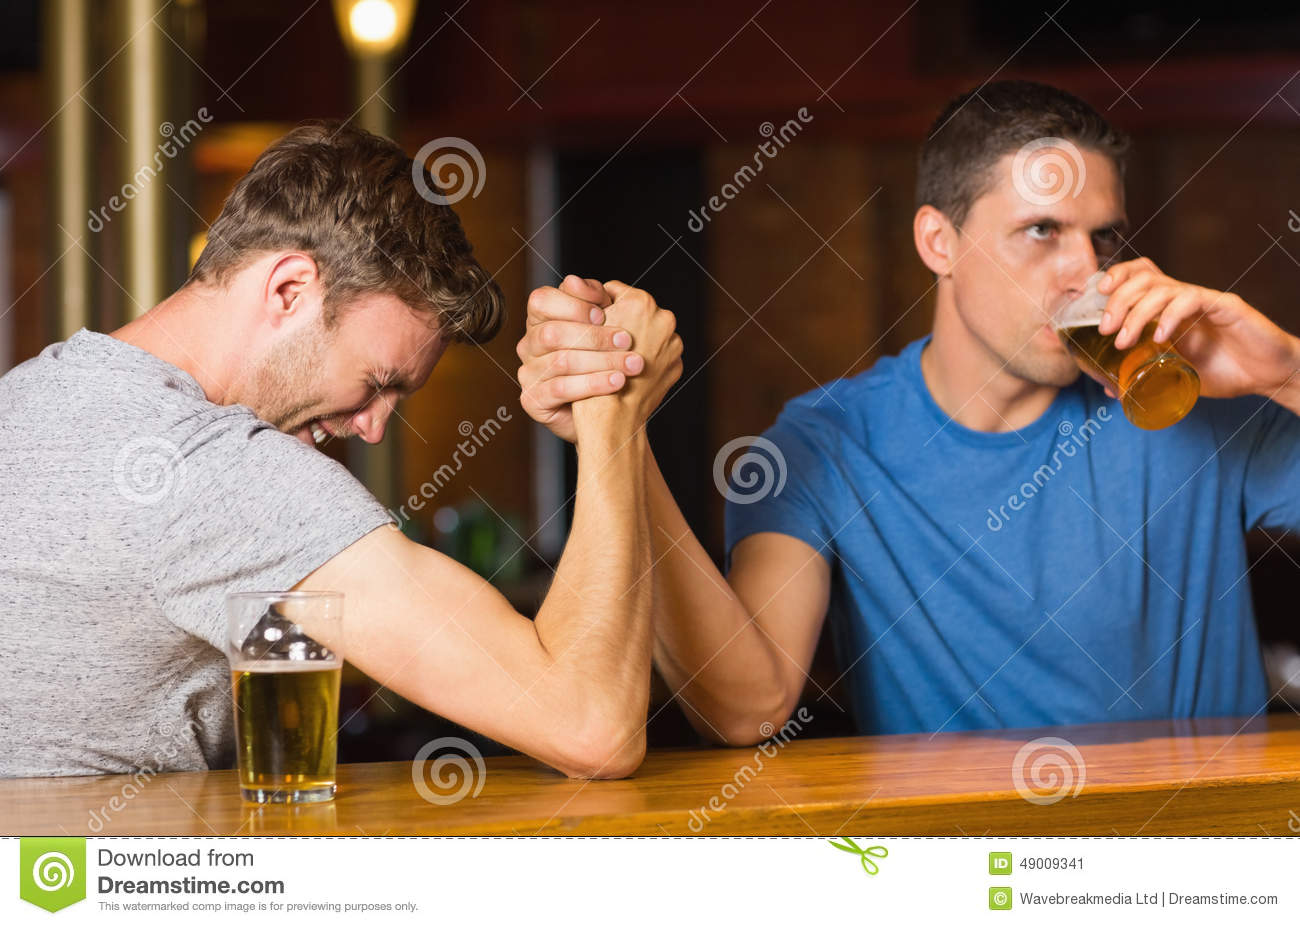 wrestlers dating each other 15 times wwe wrestlers actually harmed each other in the ring what better time is there to purposely hurt someone than during a match at a wwe event.